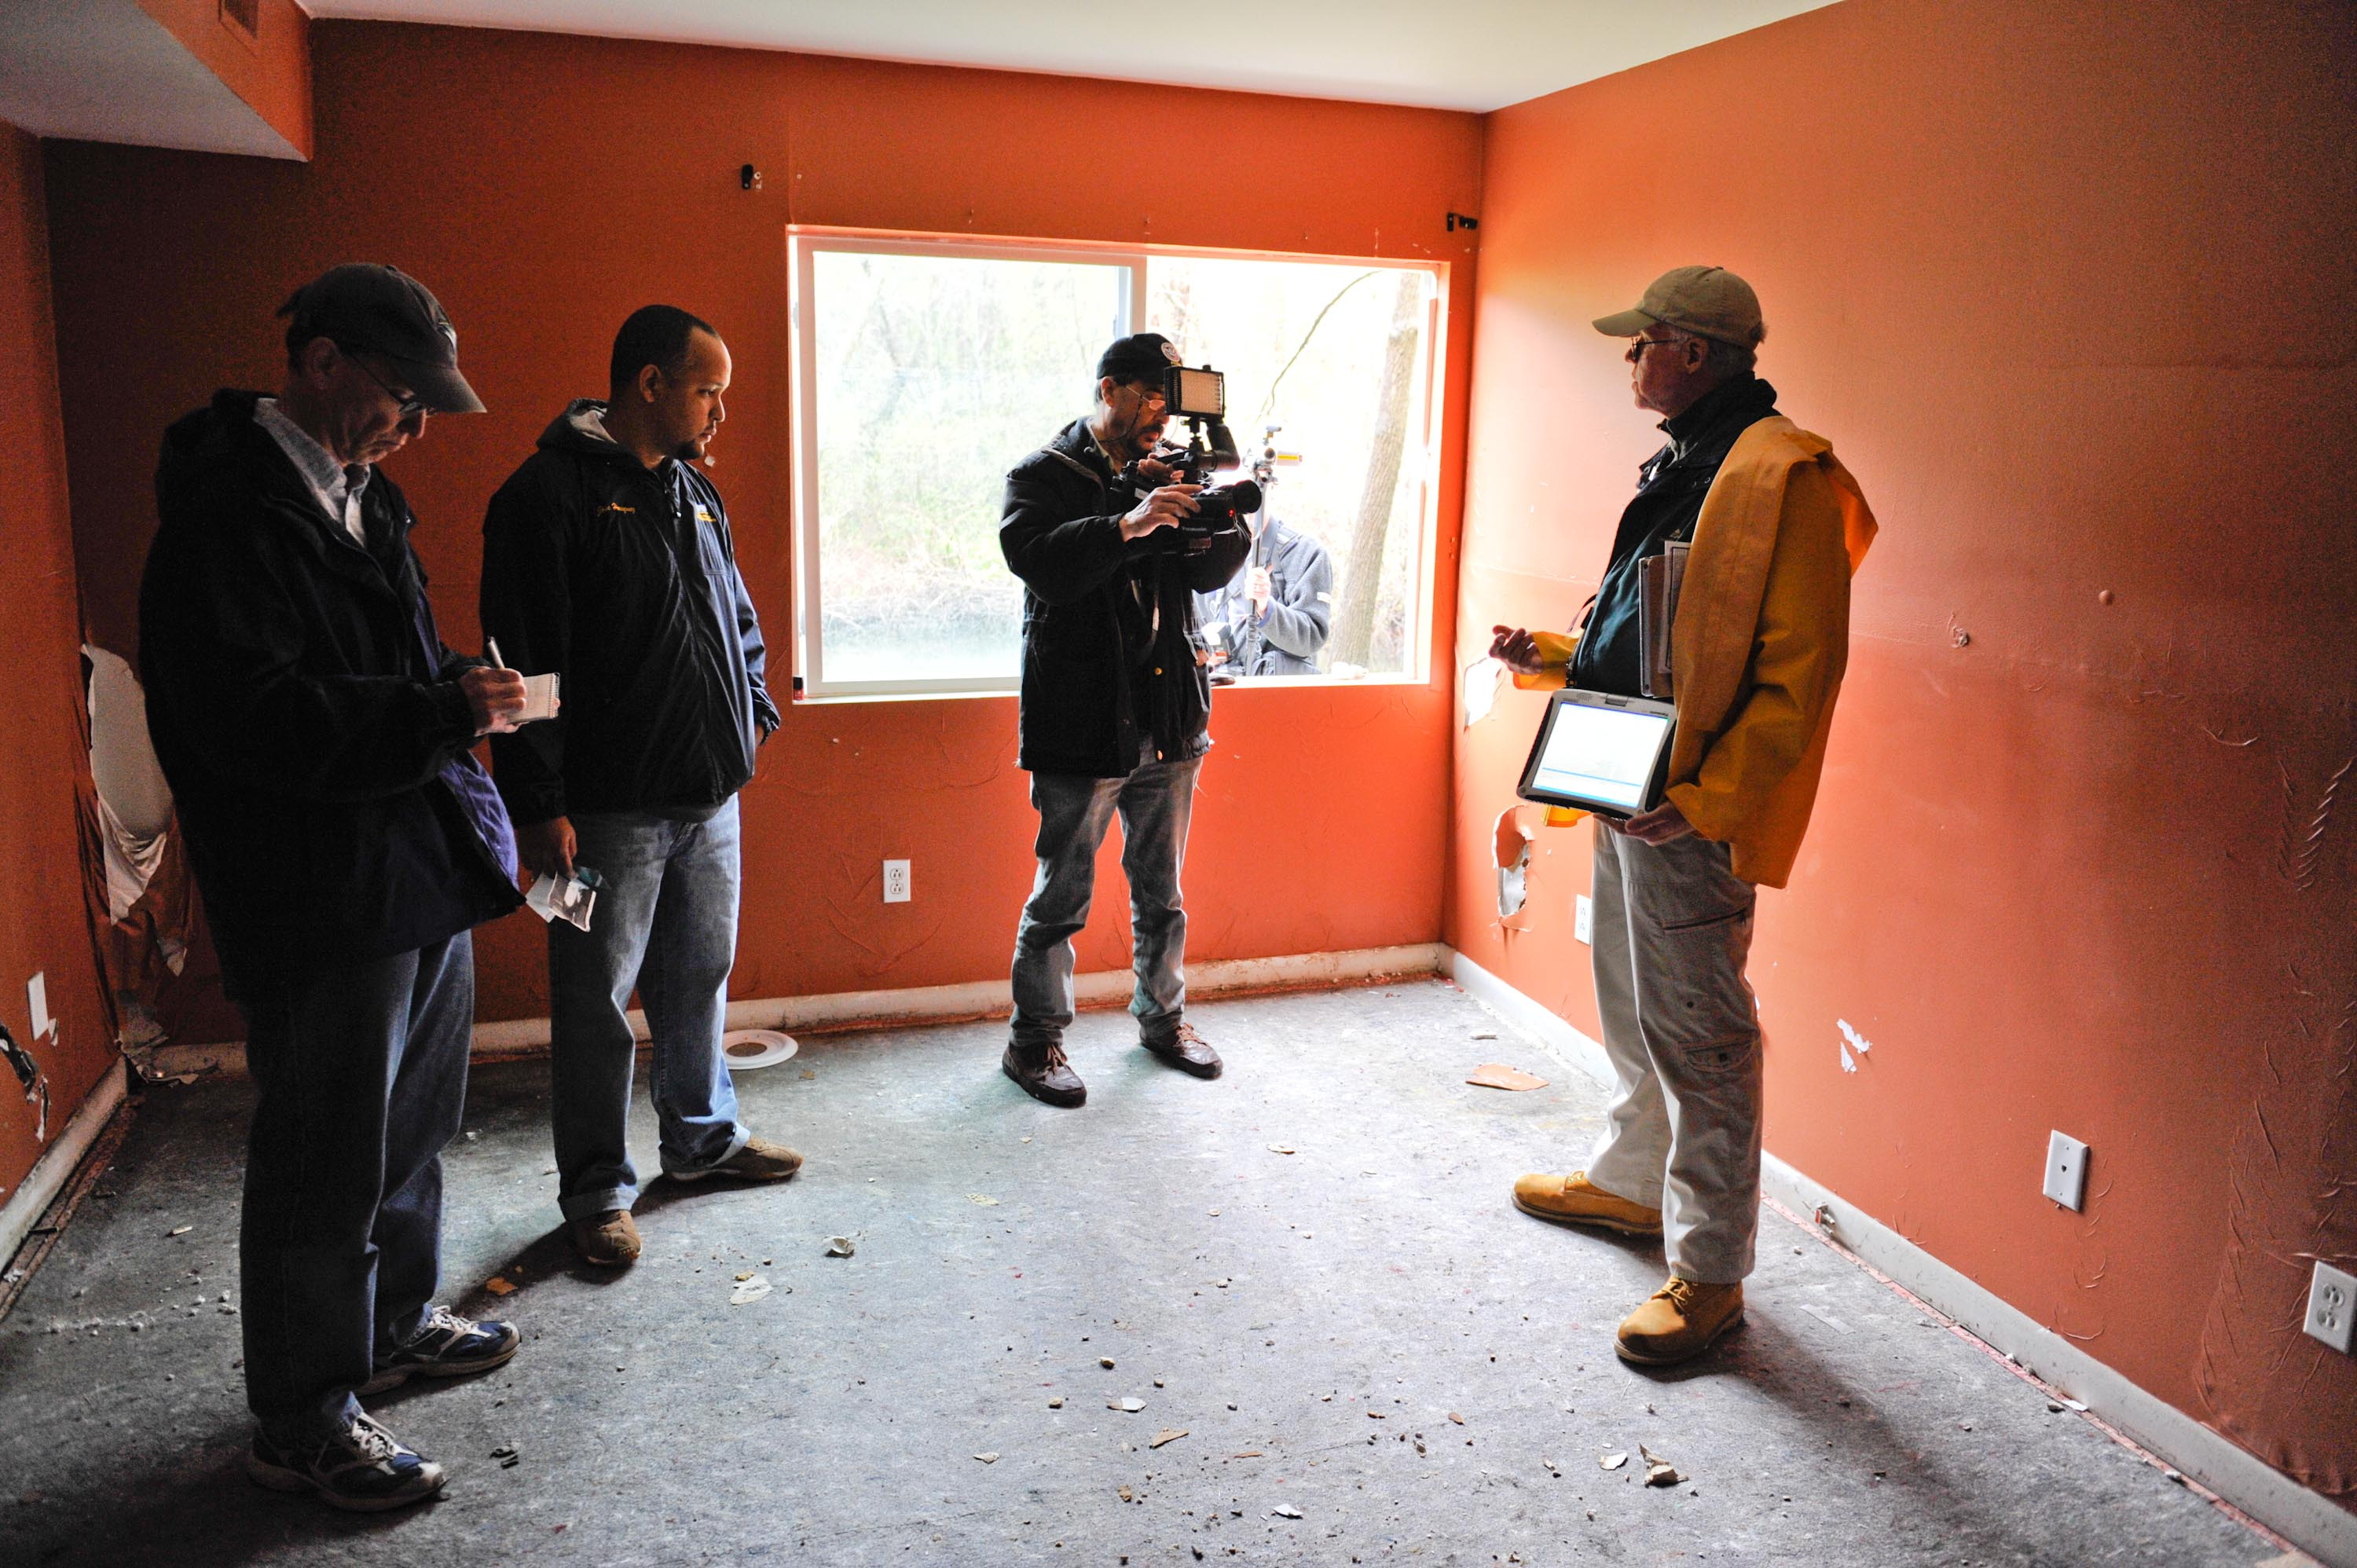 FEMA_-_43623_-_Home_inspectors_being_recorded_on_video_by_the_media_in_Rhode_Island.jpg